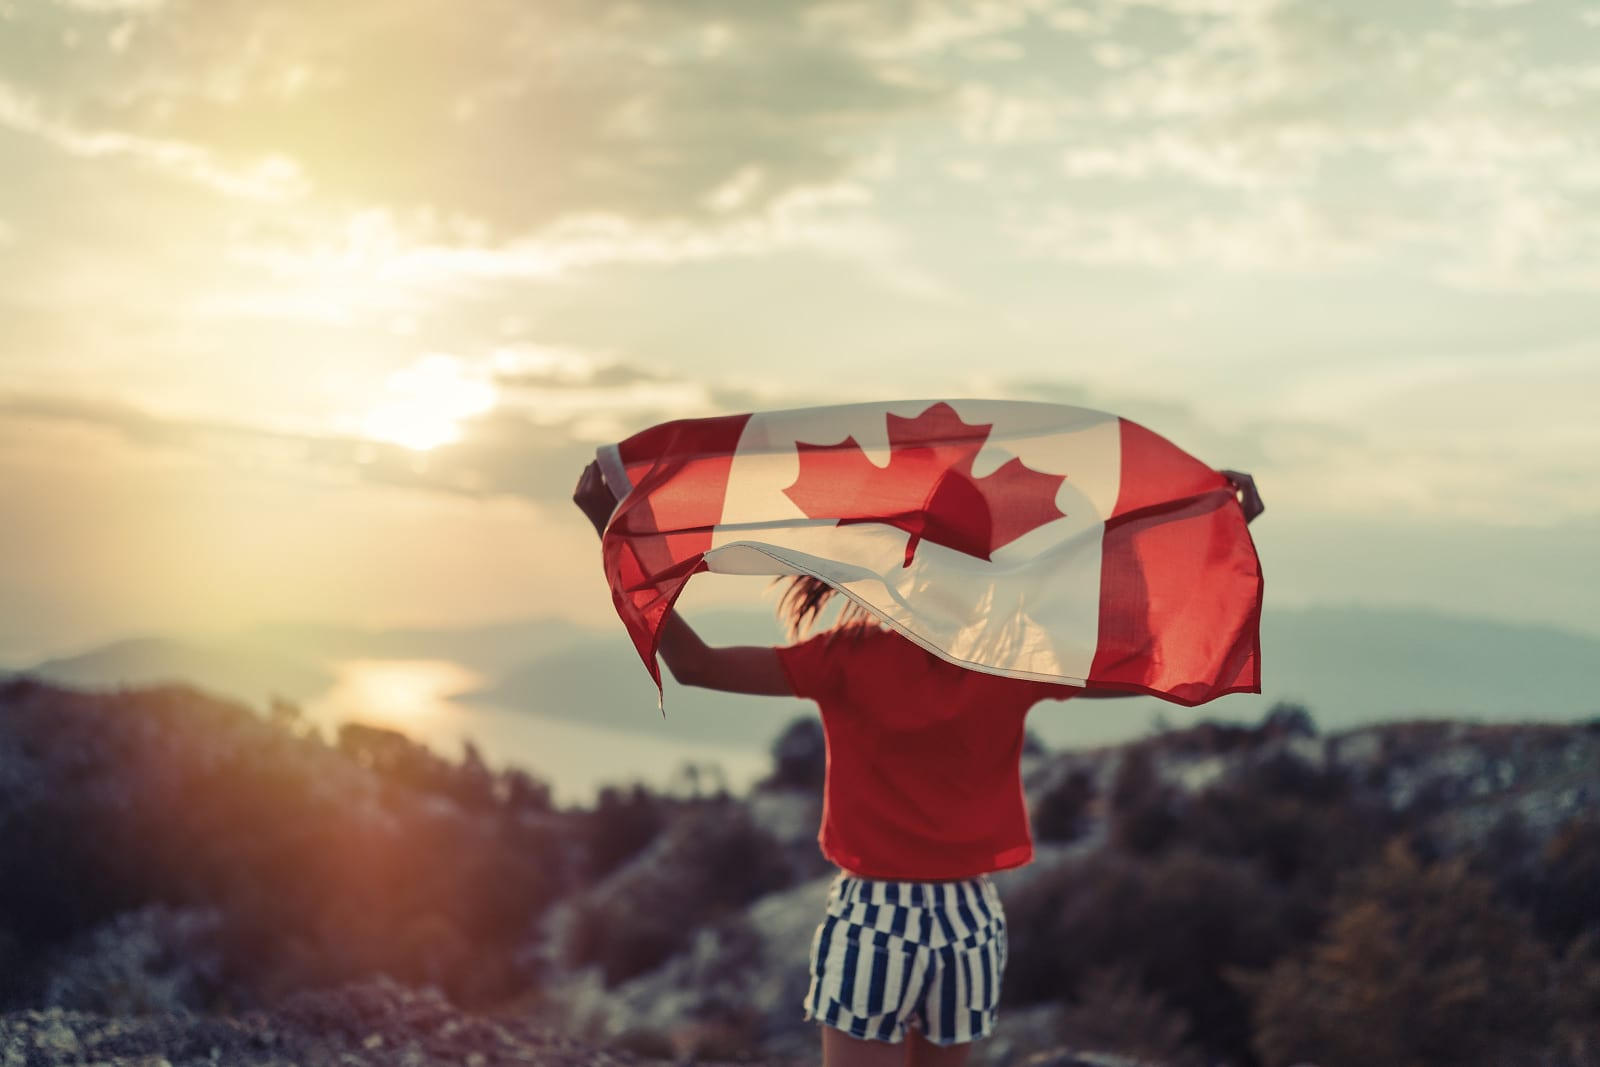 The Step By Step Process For Relocating To Canada And Become A Permanent Resident In 6 – 9 Months​